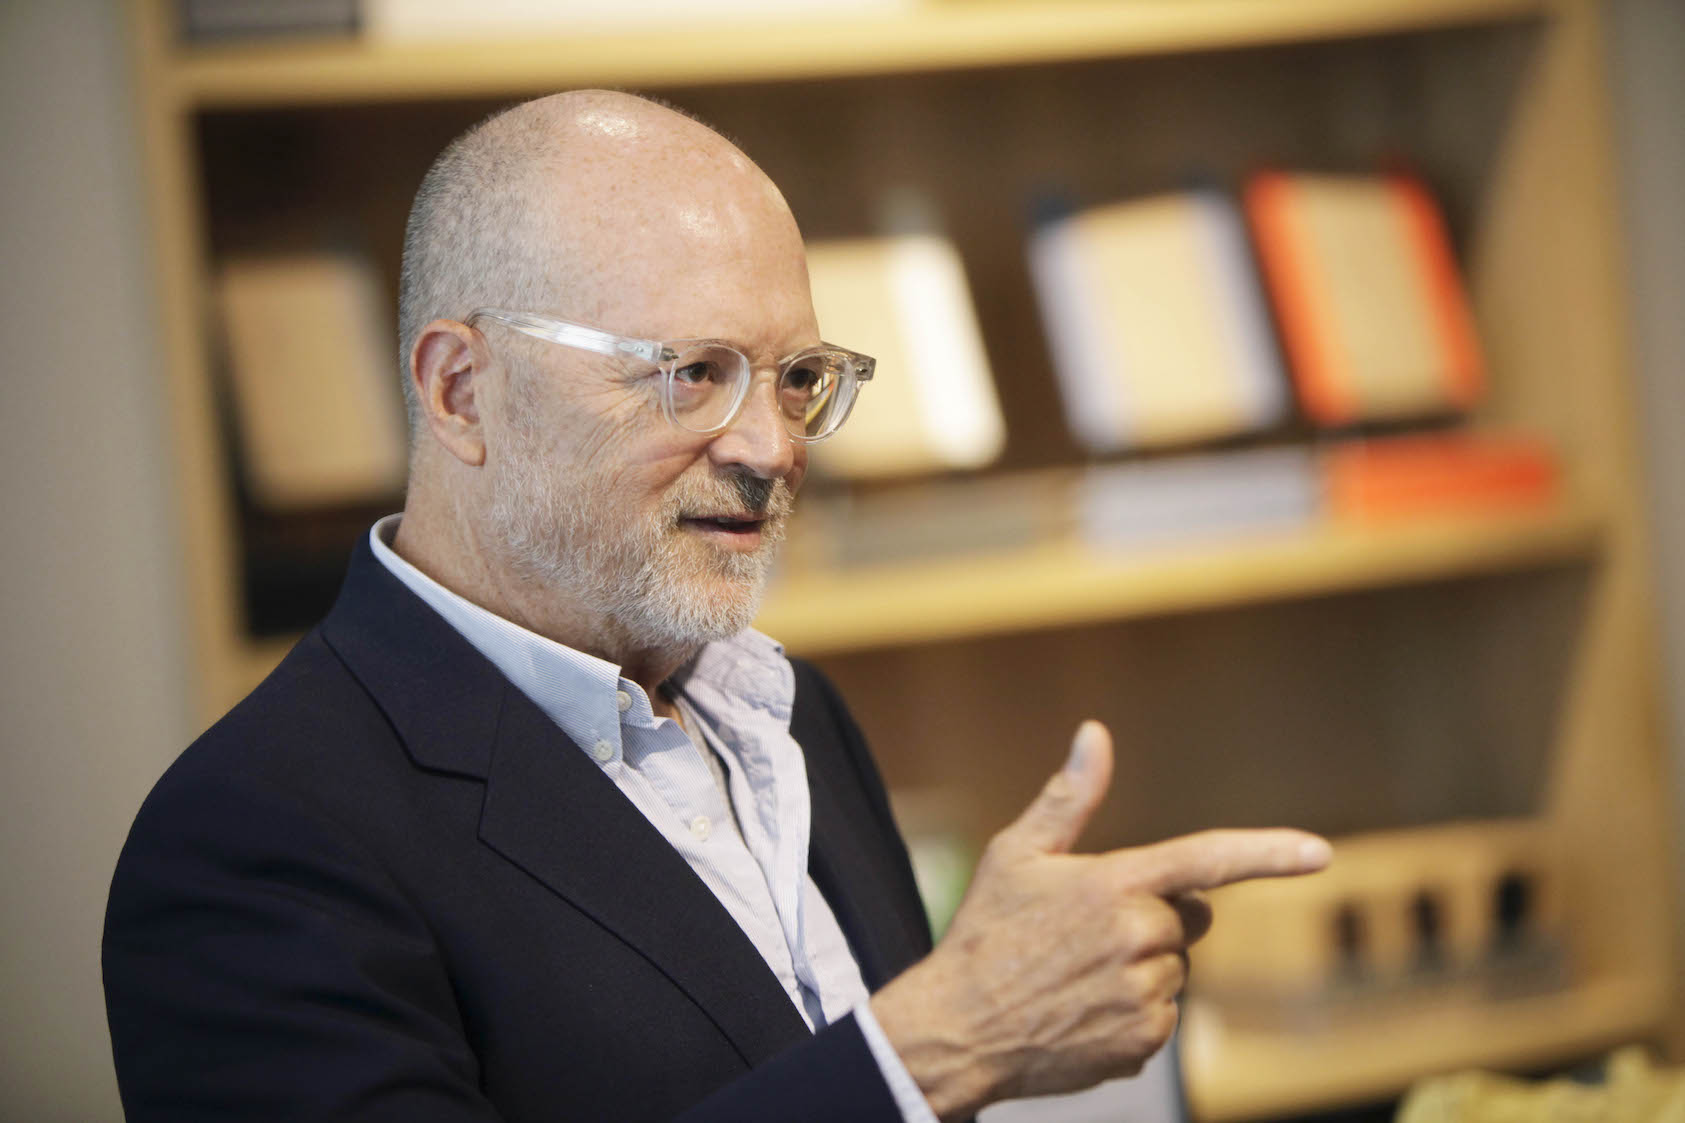 """Fashion's """"Merchant Prince,"""" former J.Crew and Gap Inc. CEO Mickey Drexler, will work alongside his son Alex Drexler and Somsack Sikhounmuong, the co-founders of the classics brand."""